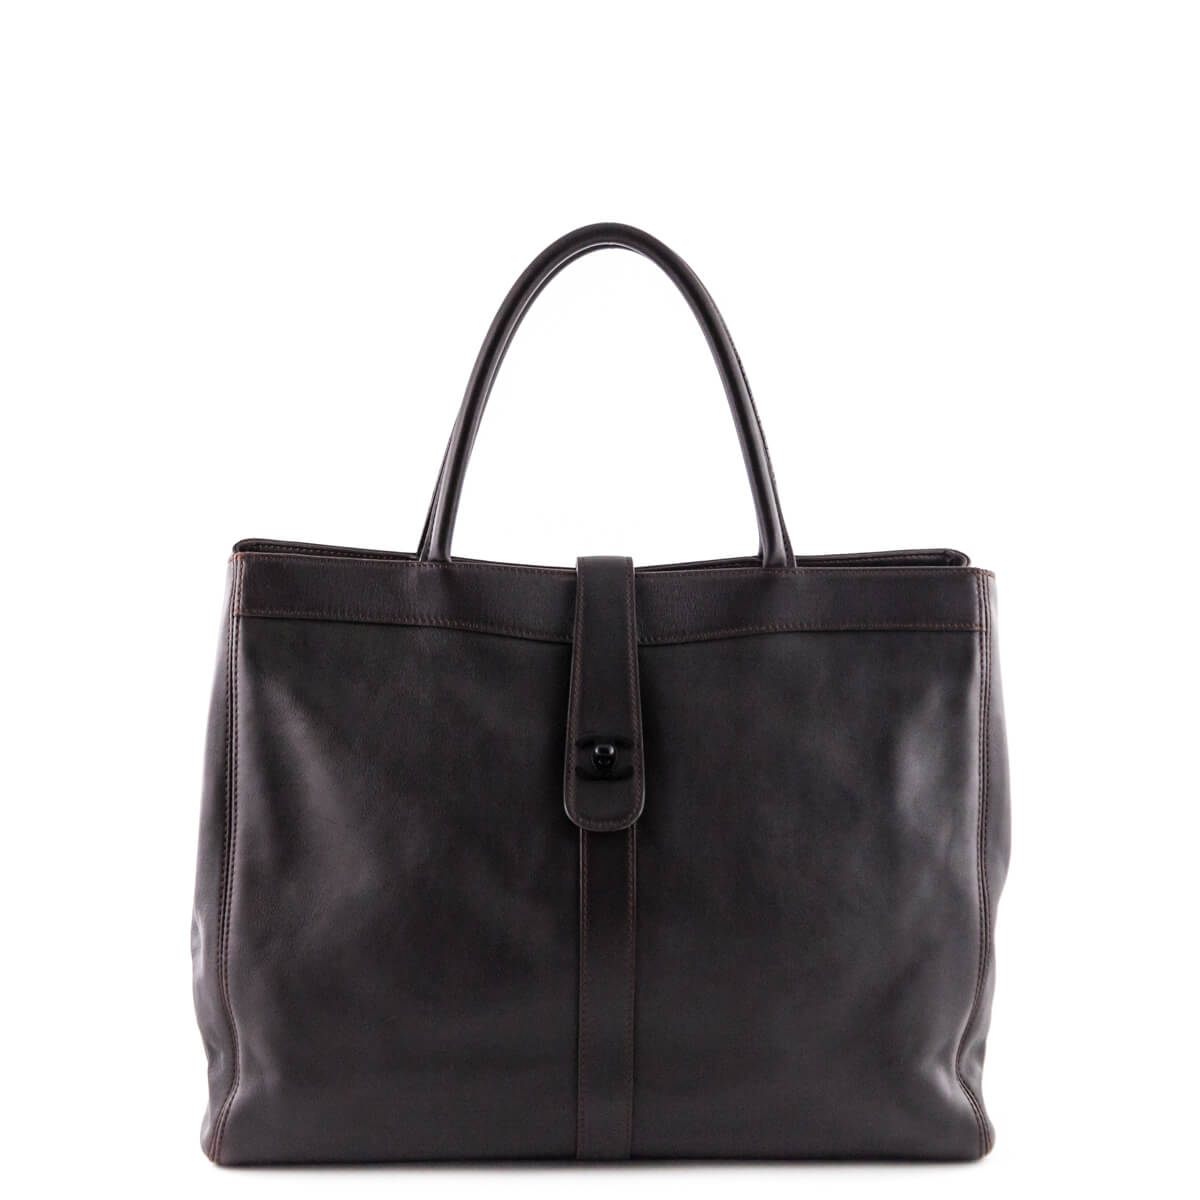 Chanel Brown Calfskin Shopping Tote - LOVE that BAG - Preowned Authentic  Designer Handbags ... bf97a58ef9284